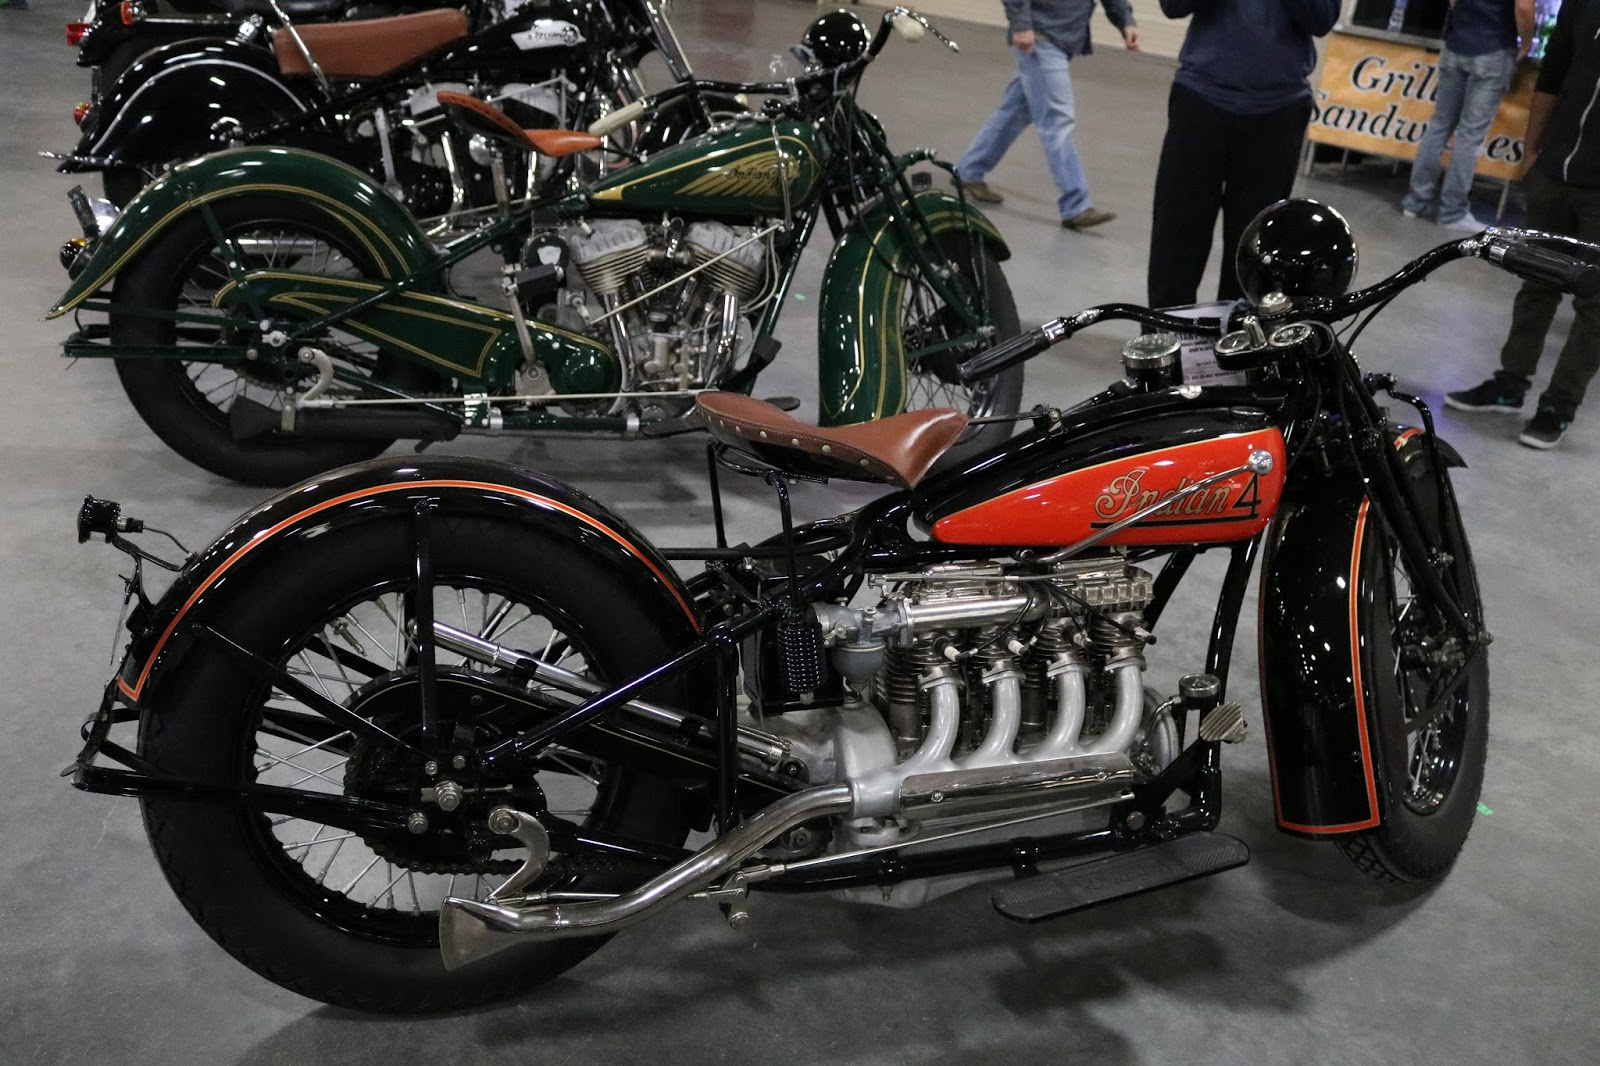 oldmotodude 1931 indian four sold for 85 000 at the 2017 mecum las vegas motorcycle auction. Black Bedroom Furniture Sets. Home Design Ideas